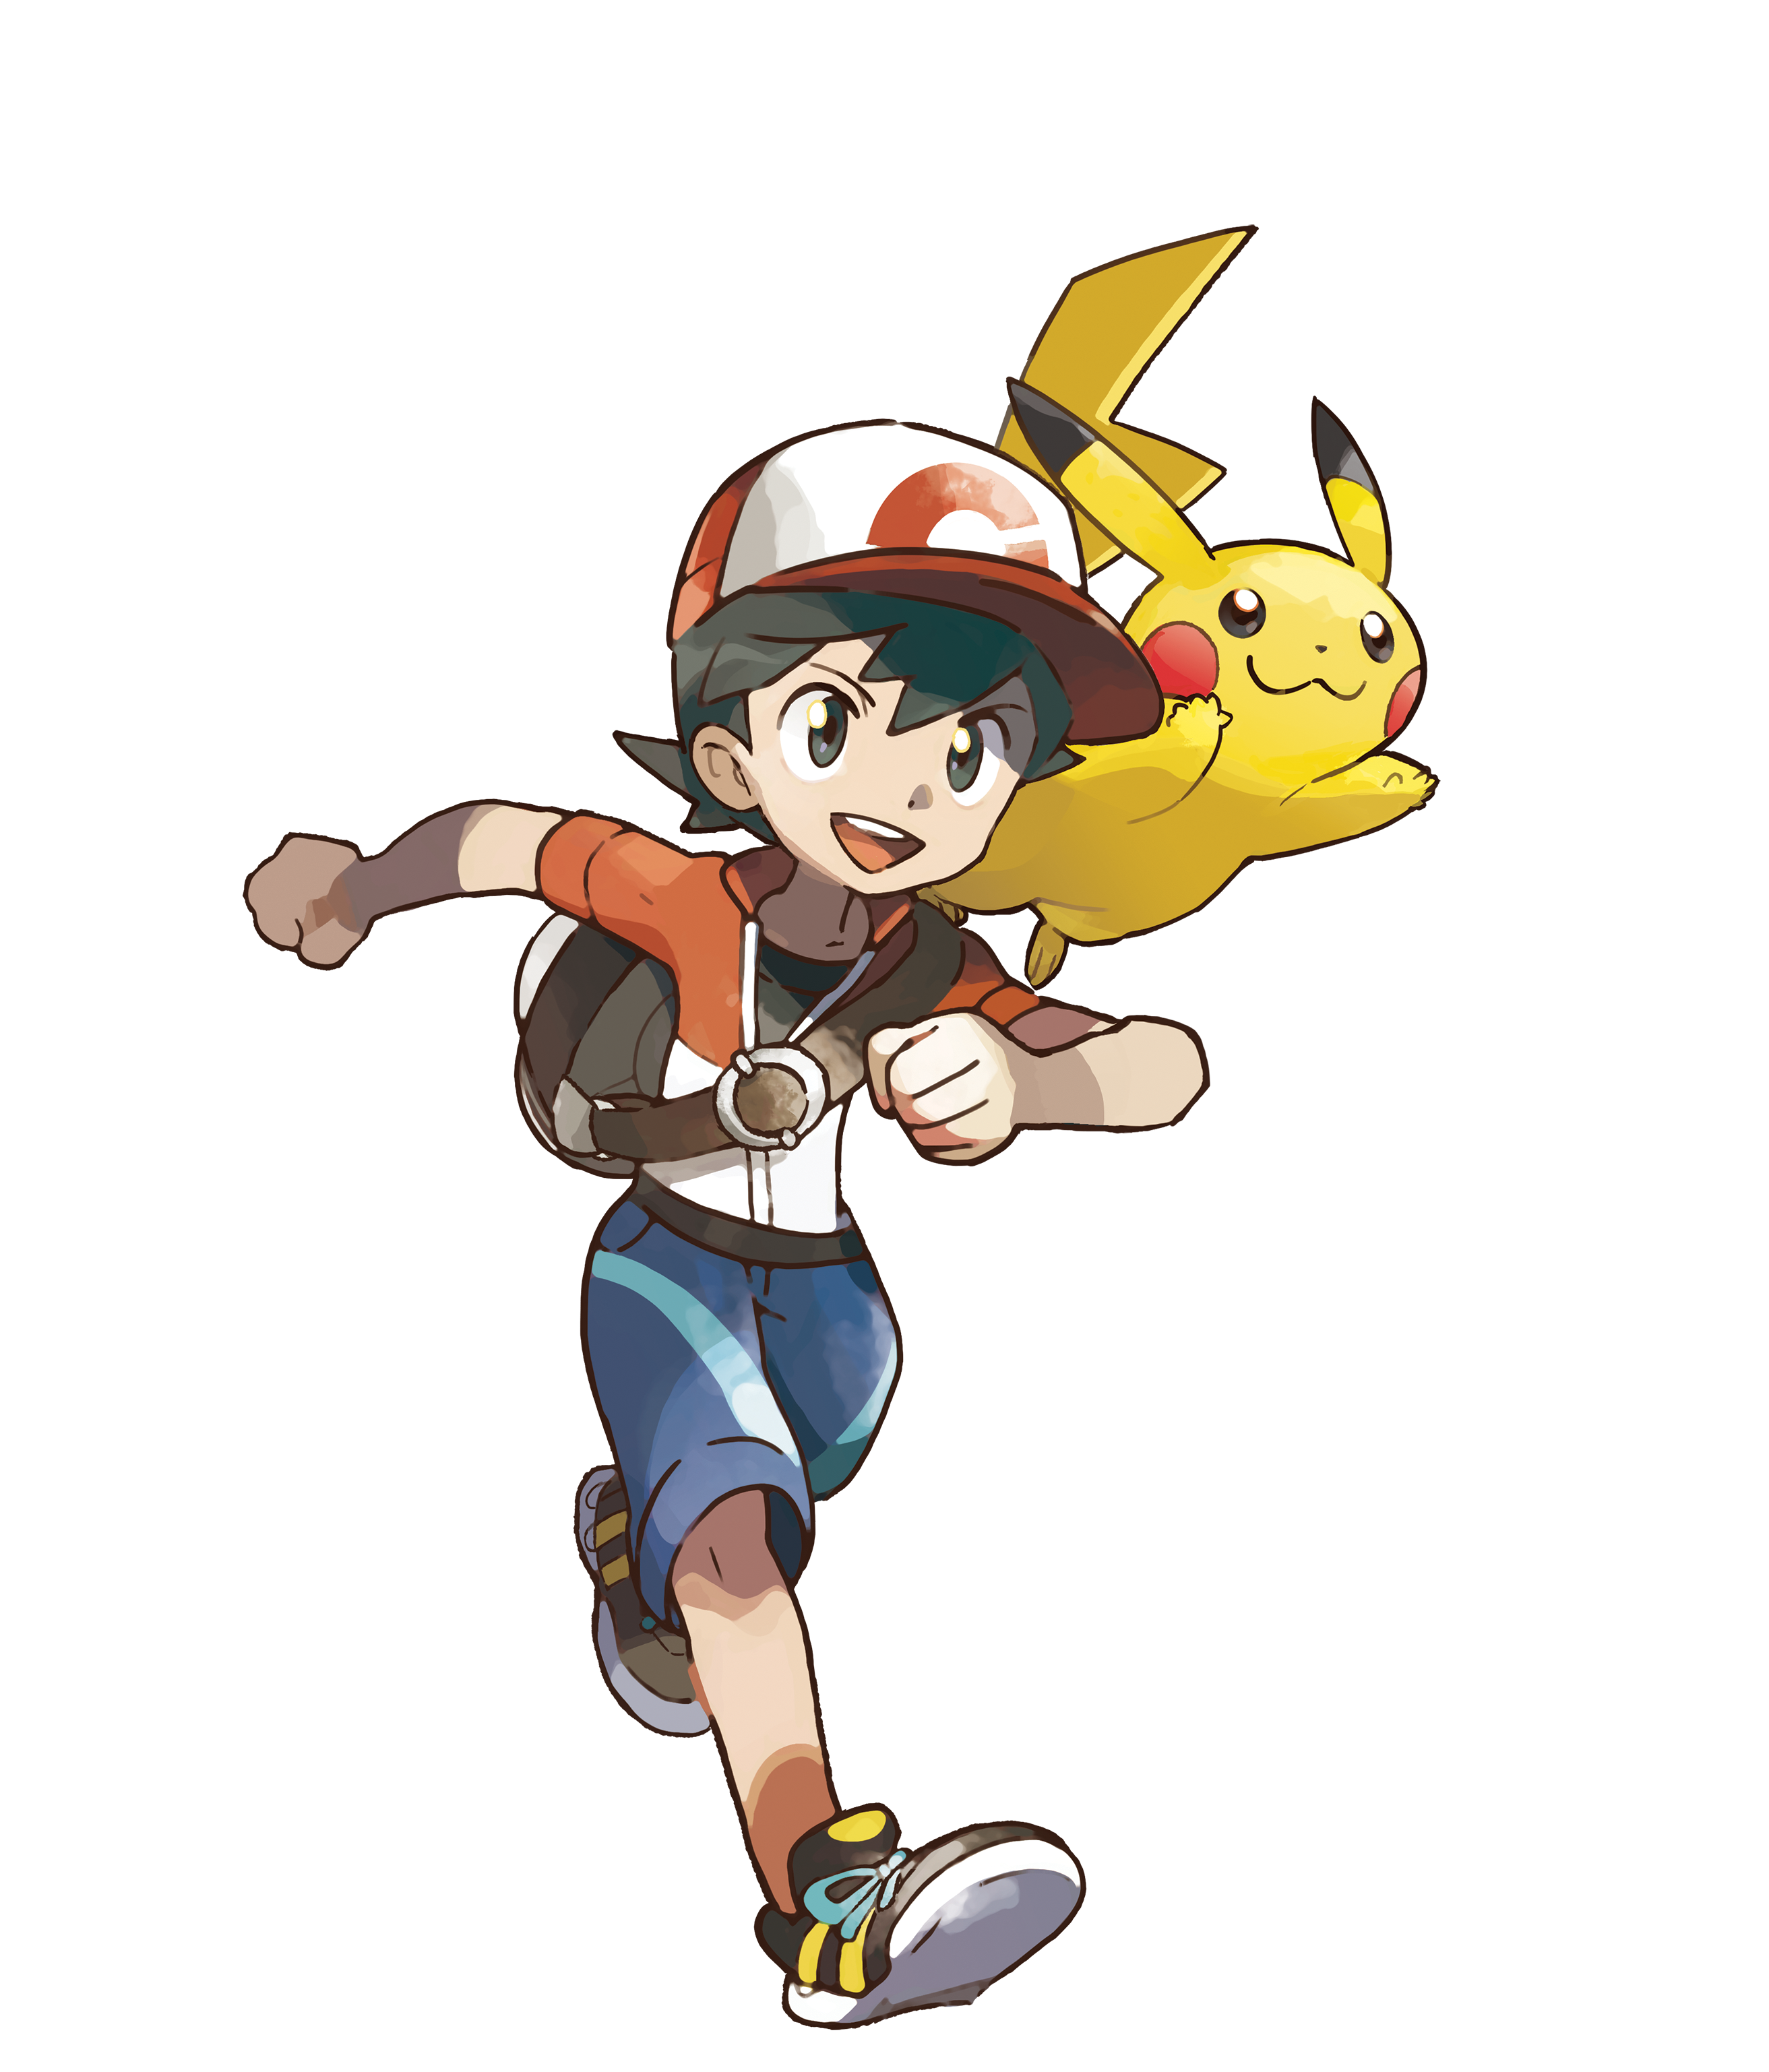 Boy Chase and Pikachu Render (Pokemon Let's Go).png